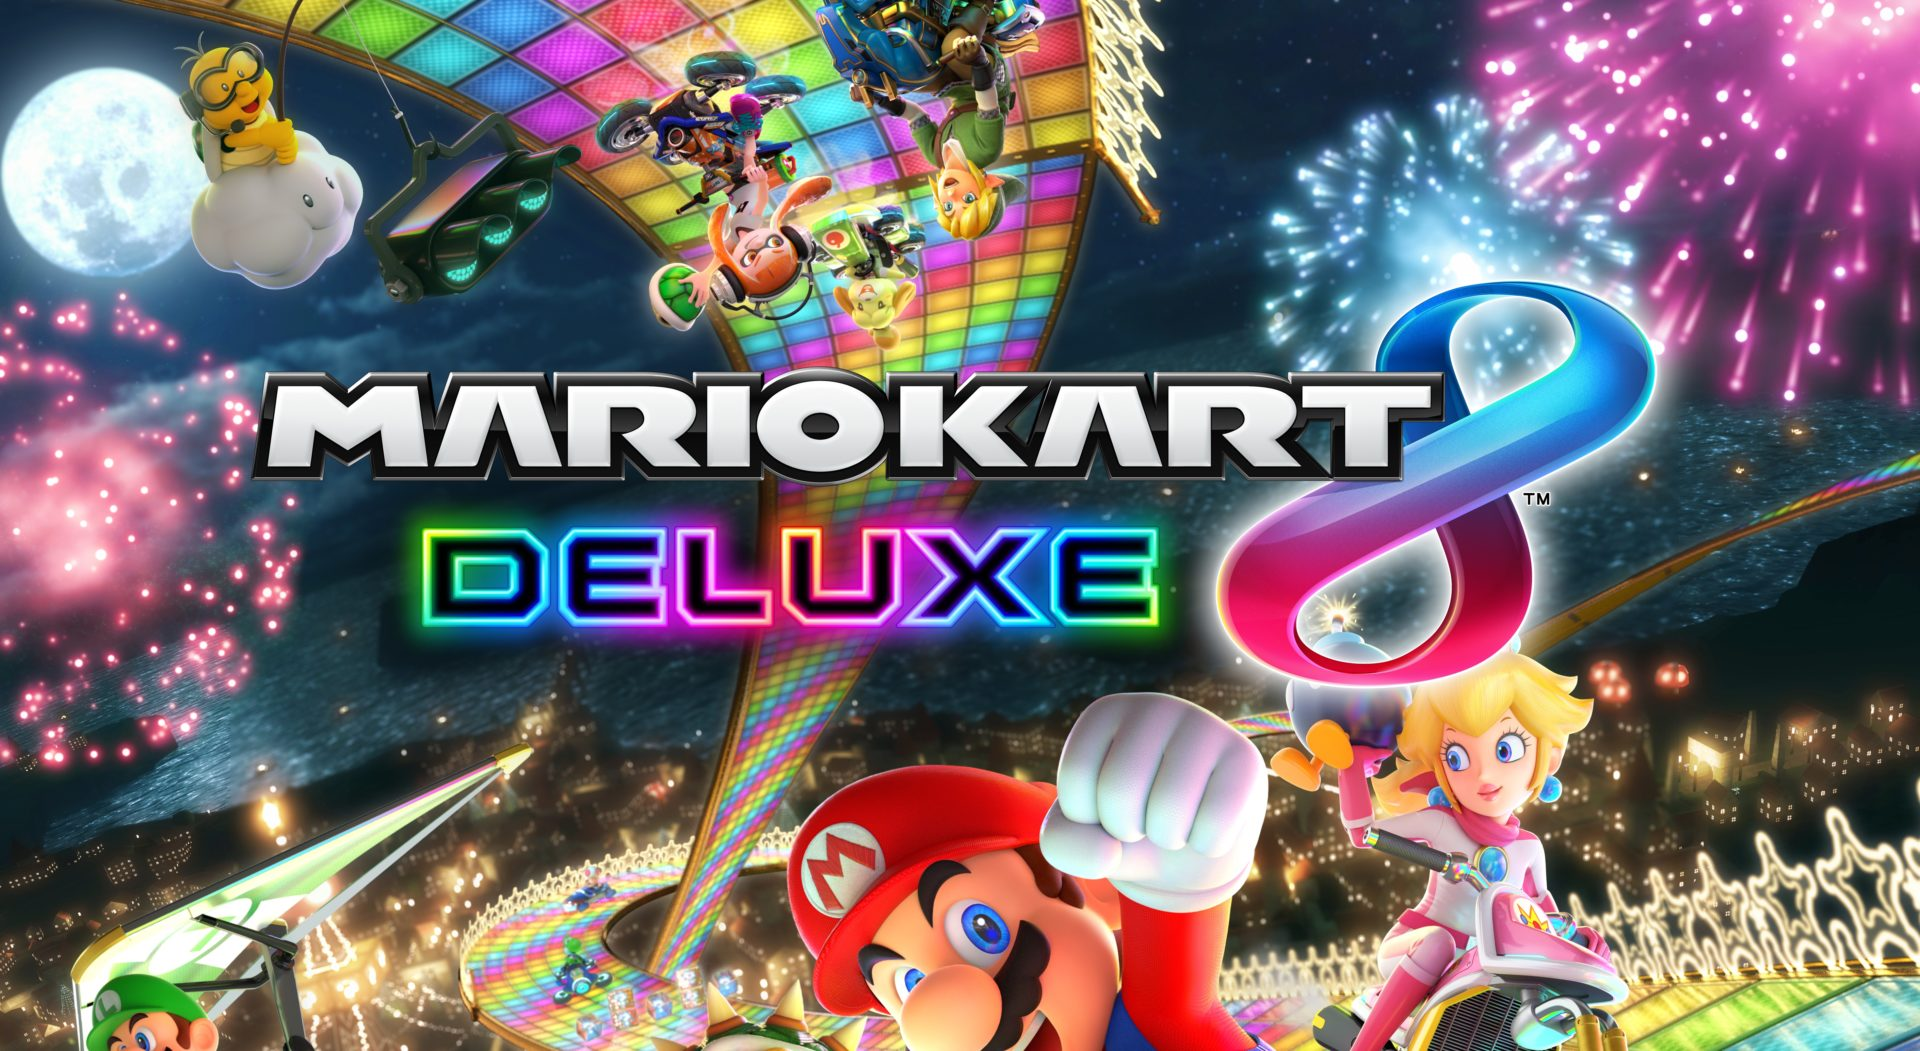 Nintendo Releases Overview Gameplay Trailer for Mario Kart 8 Deluxe